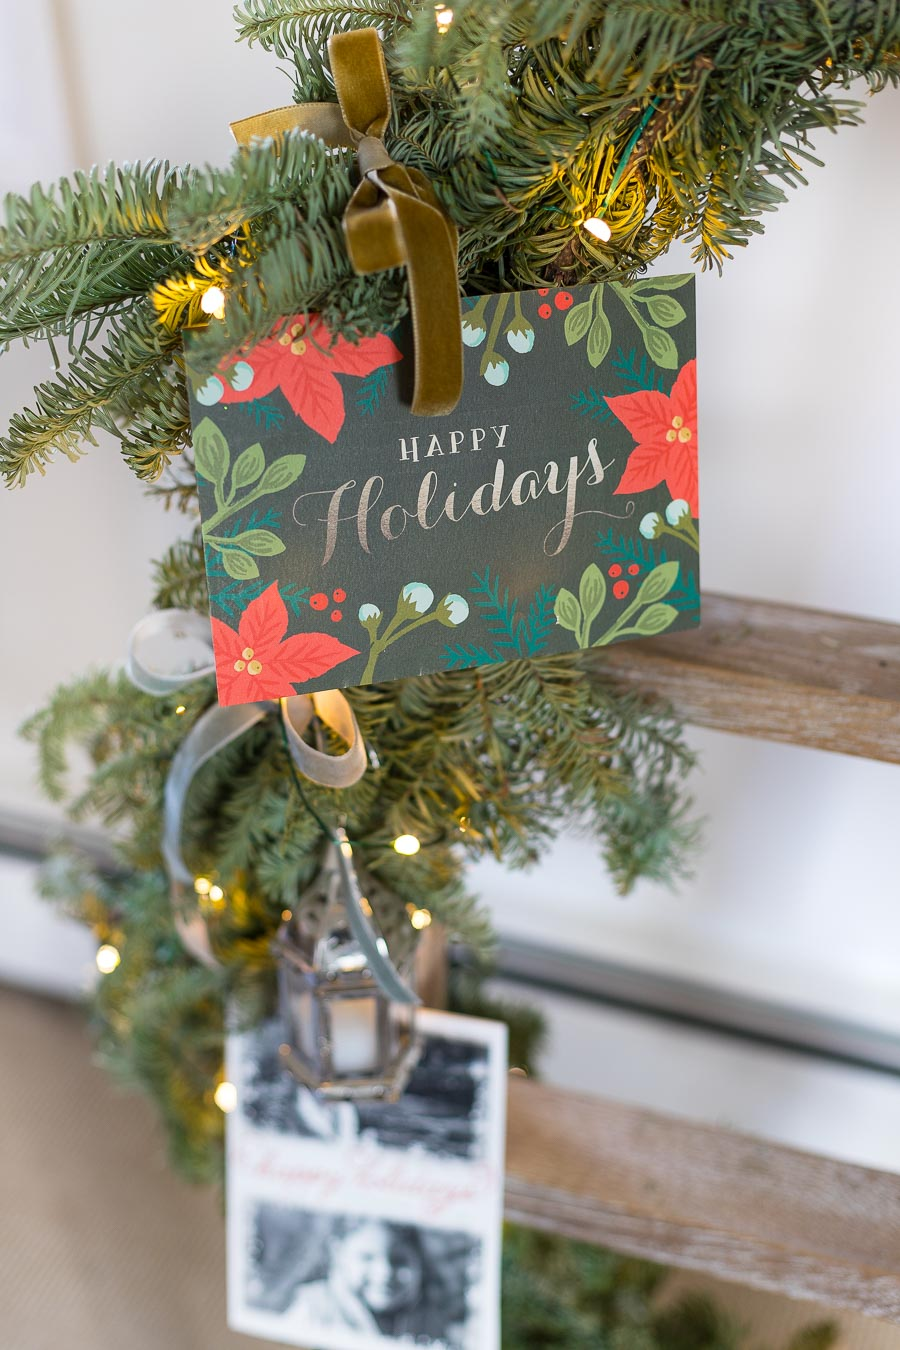 Love this way of displaying Christmas cards by tying them onto a garland wrapped ladder!